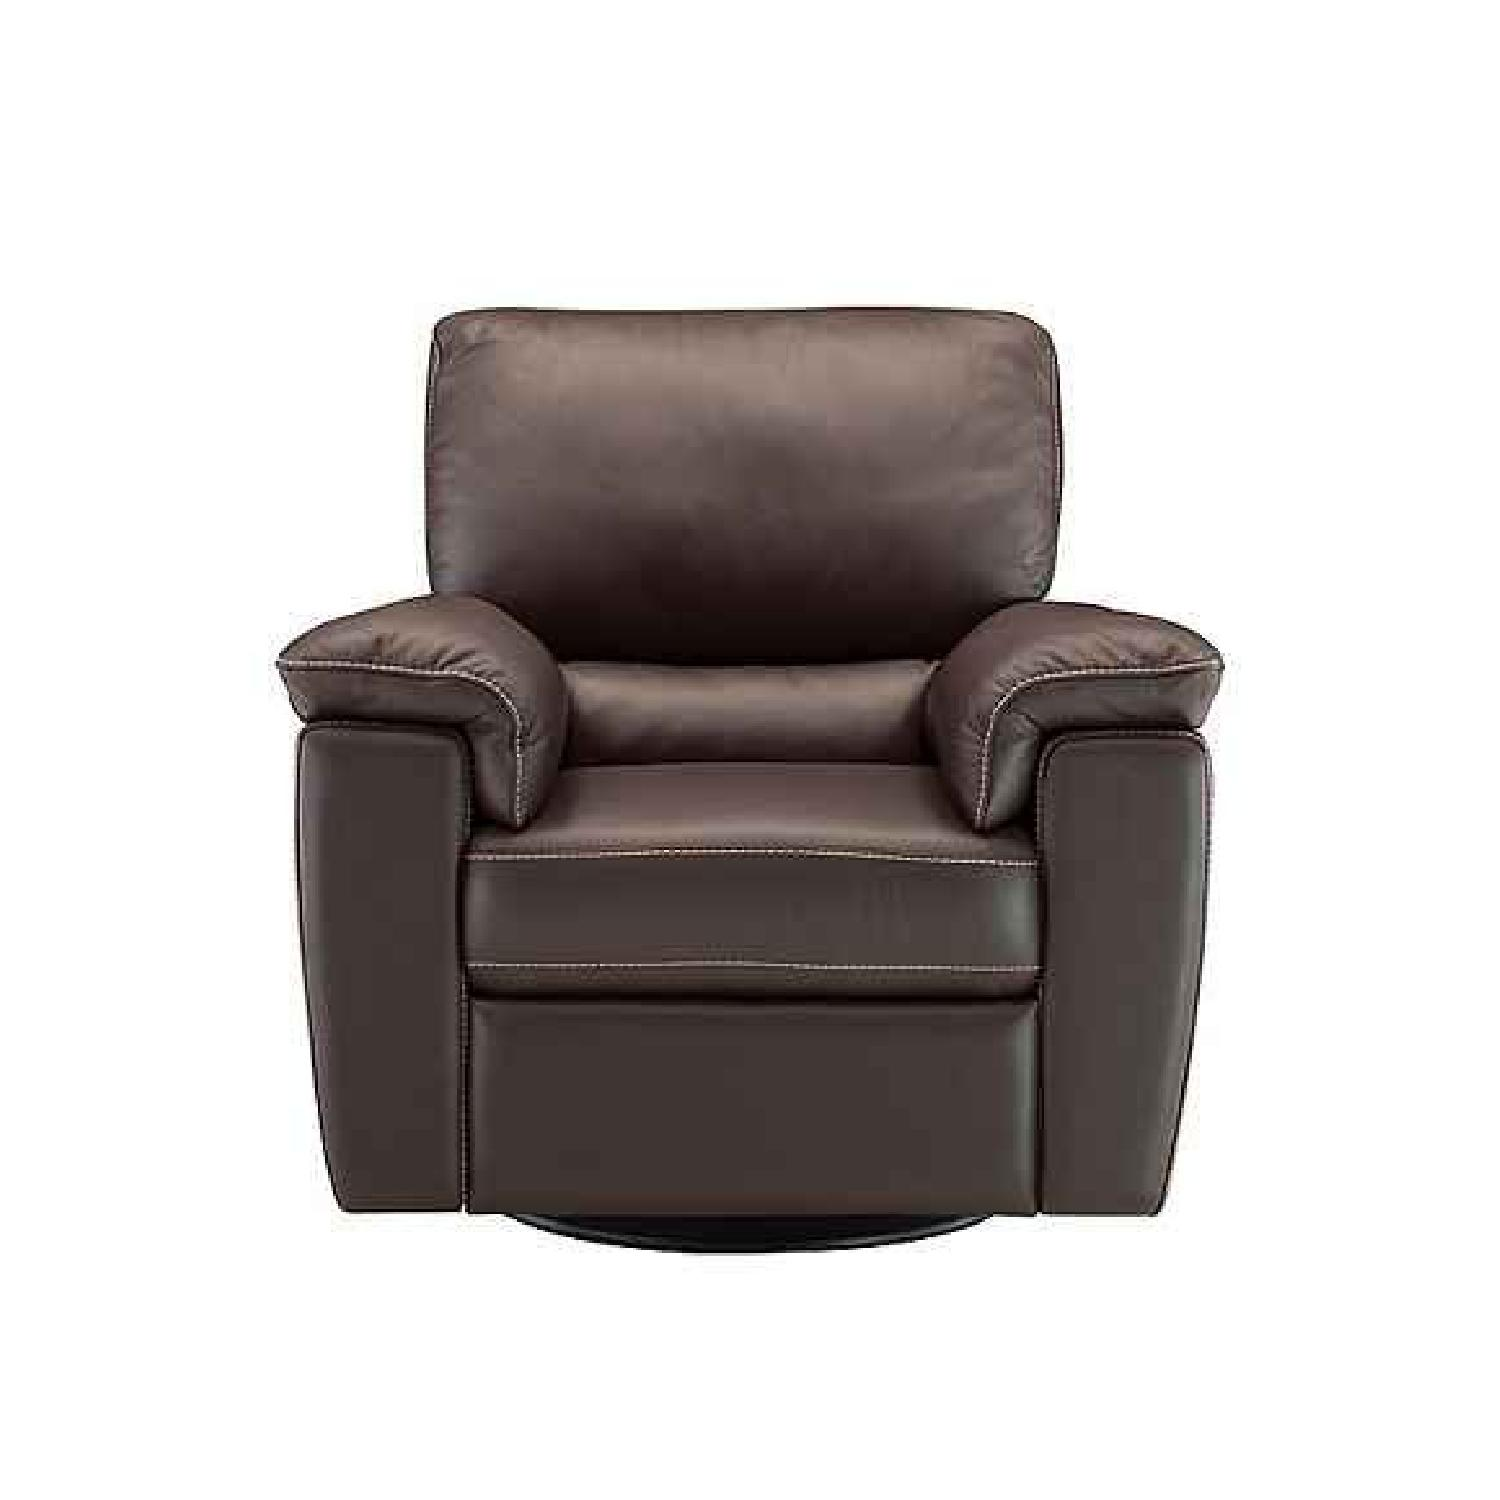 Raymour & Flanigan Leather Recliner Sectional Sofa + Chair - image-4